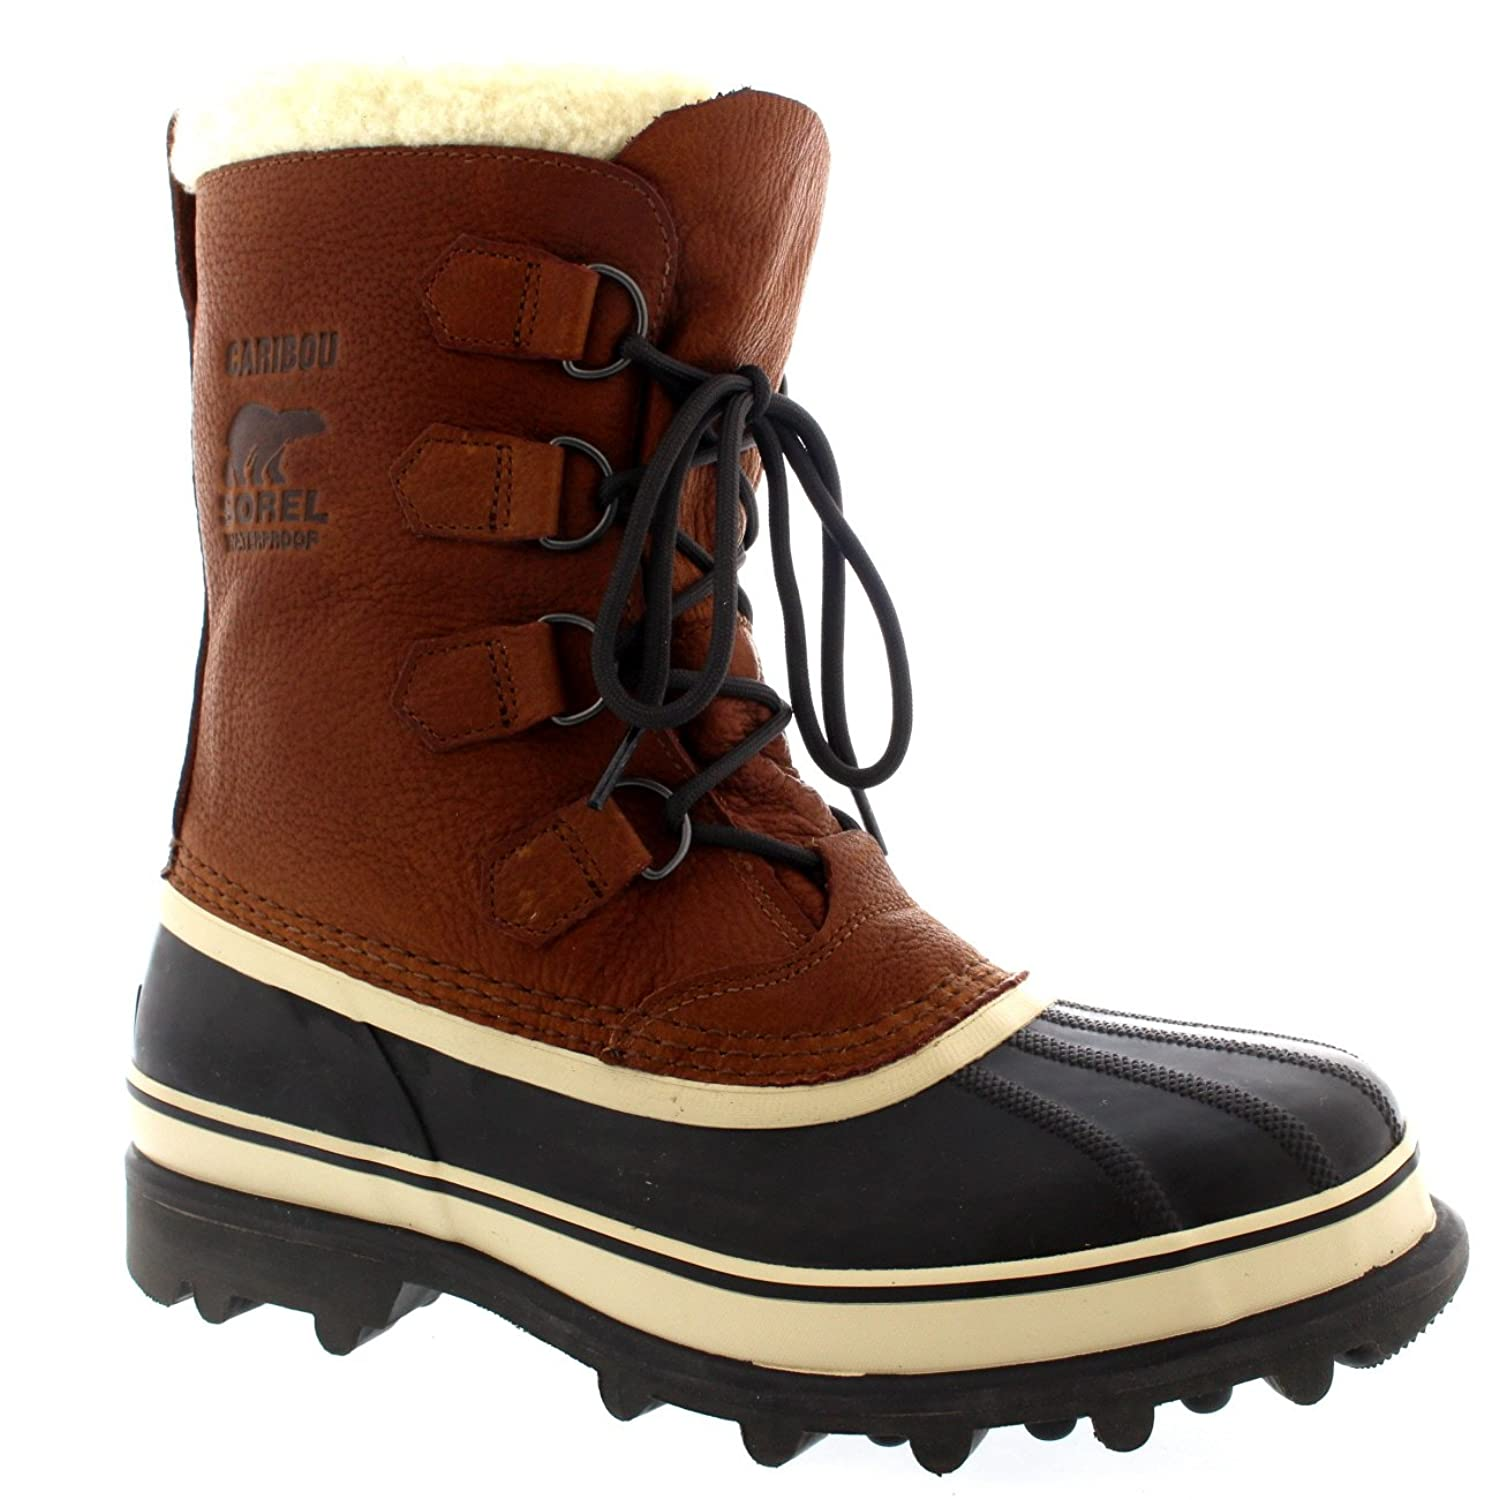 Mens Sorel Caribou WI Mid Calf Snow Winter Rain Fur Lined Leather Boot - Tan - 12